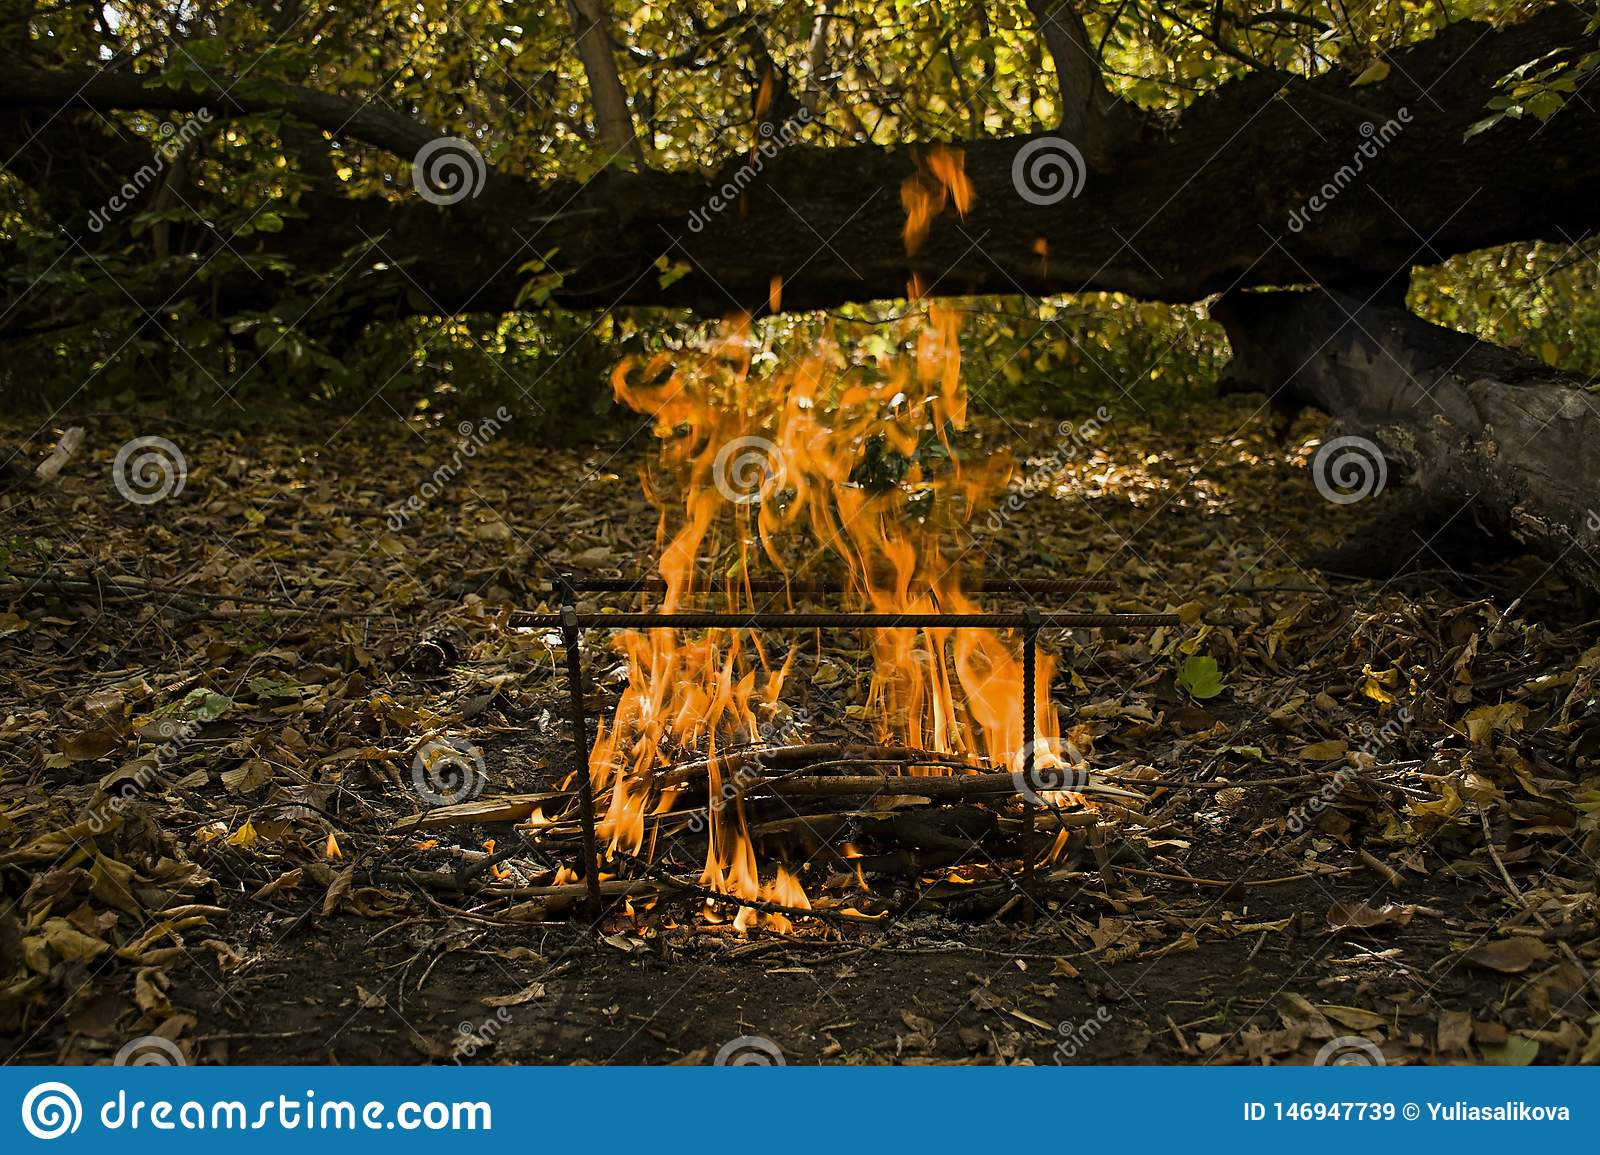 Atmospheric flame by the fire closeup. Camping. Leisure. Outdoor recreation. Beautiful orange fire with smoke with copy space